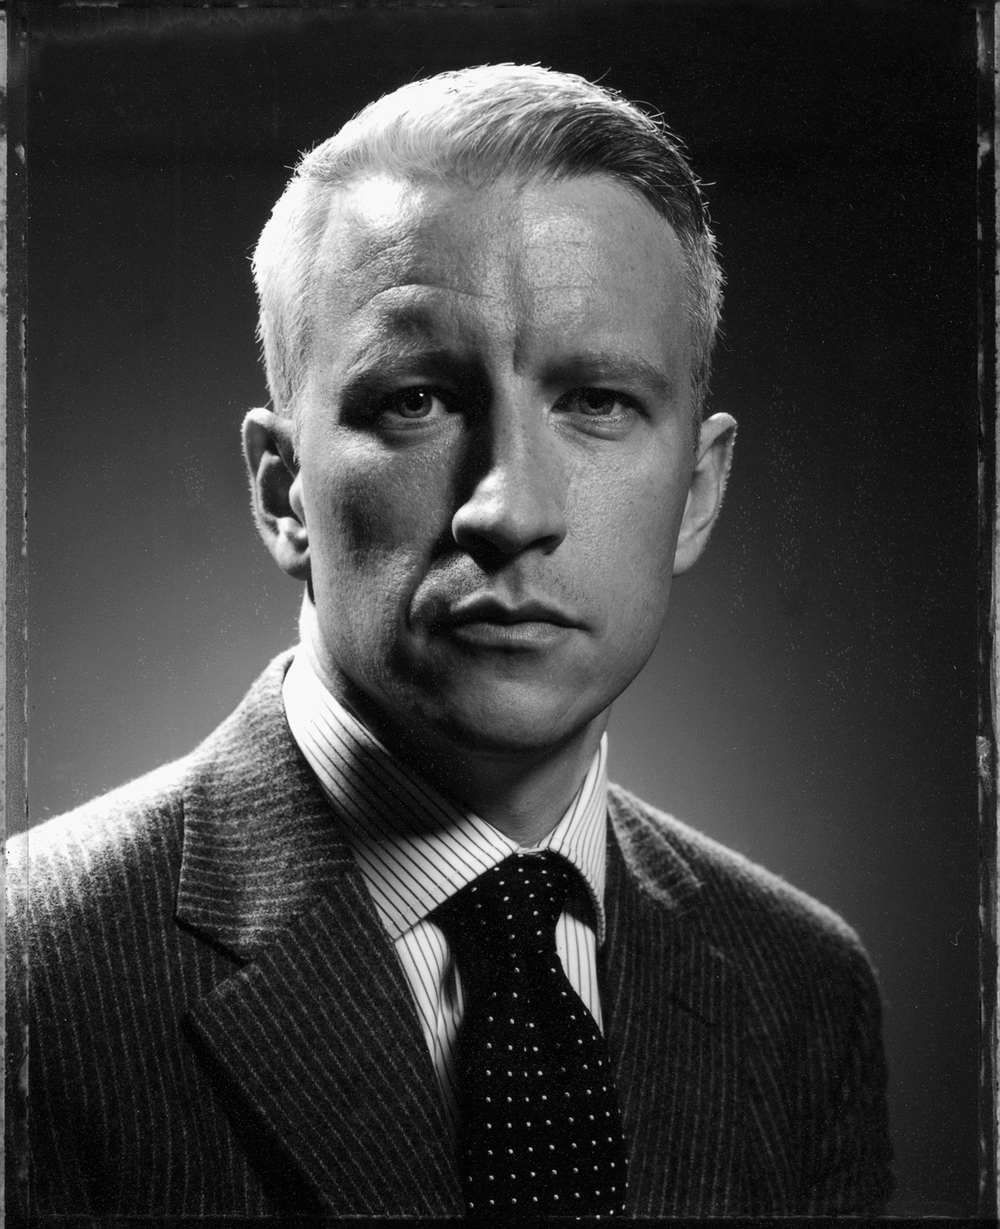 Anderson Cooper - New York City